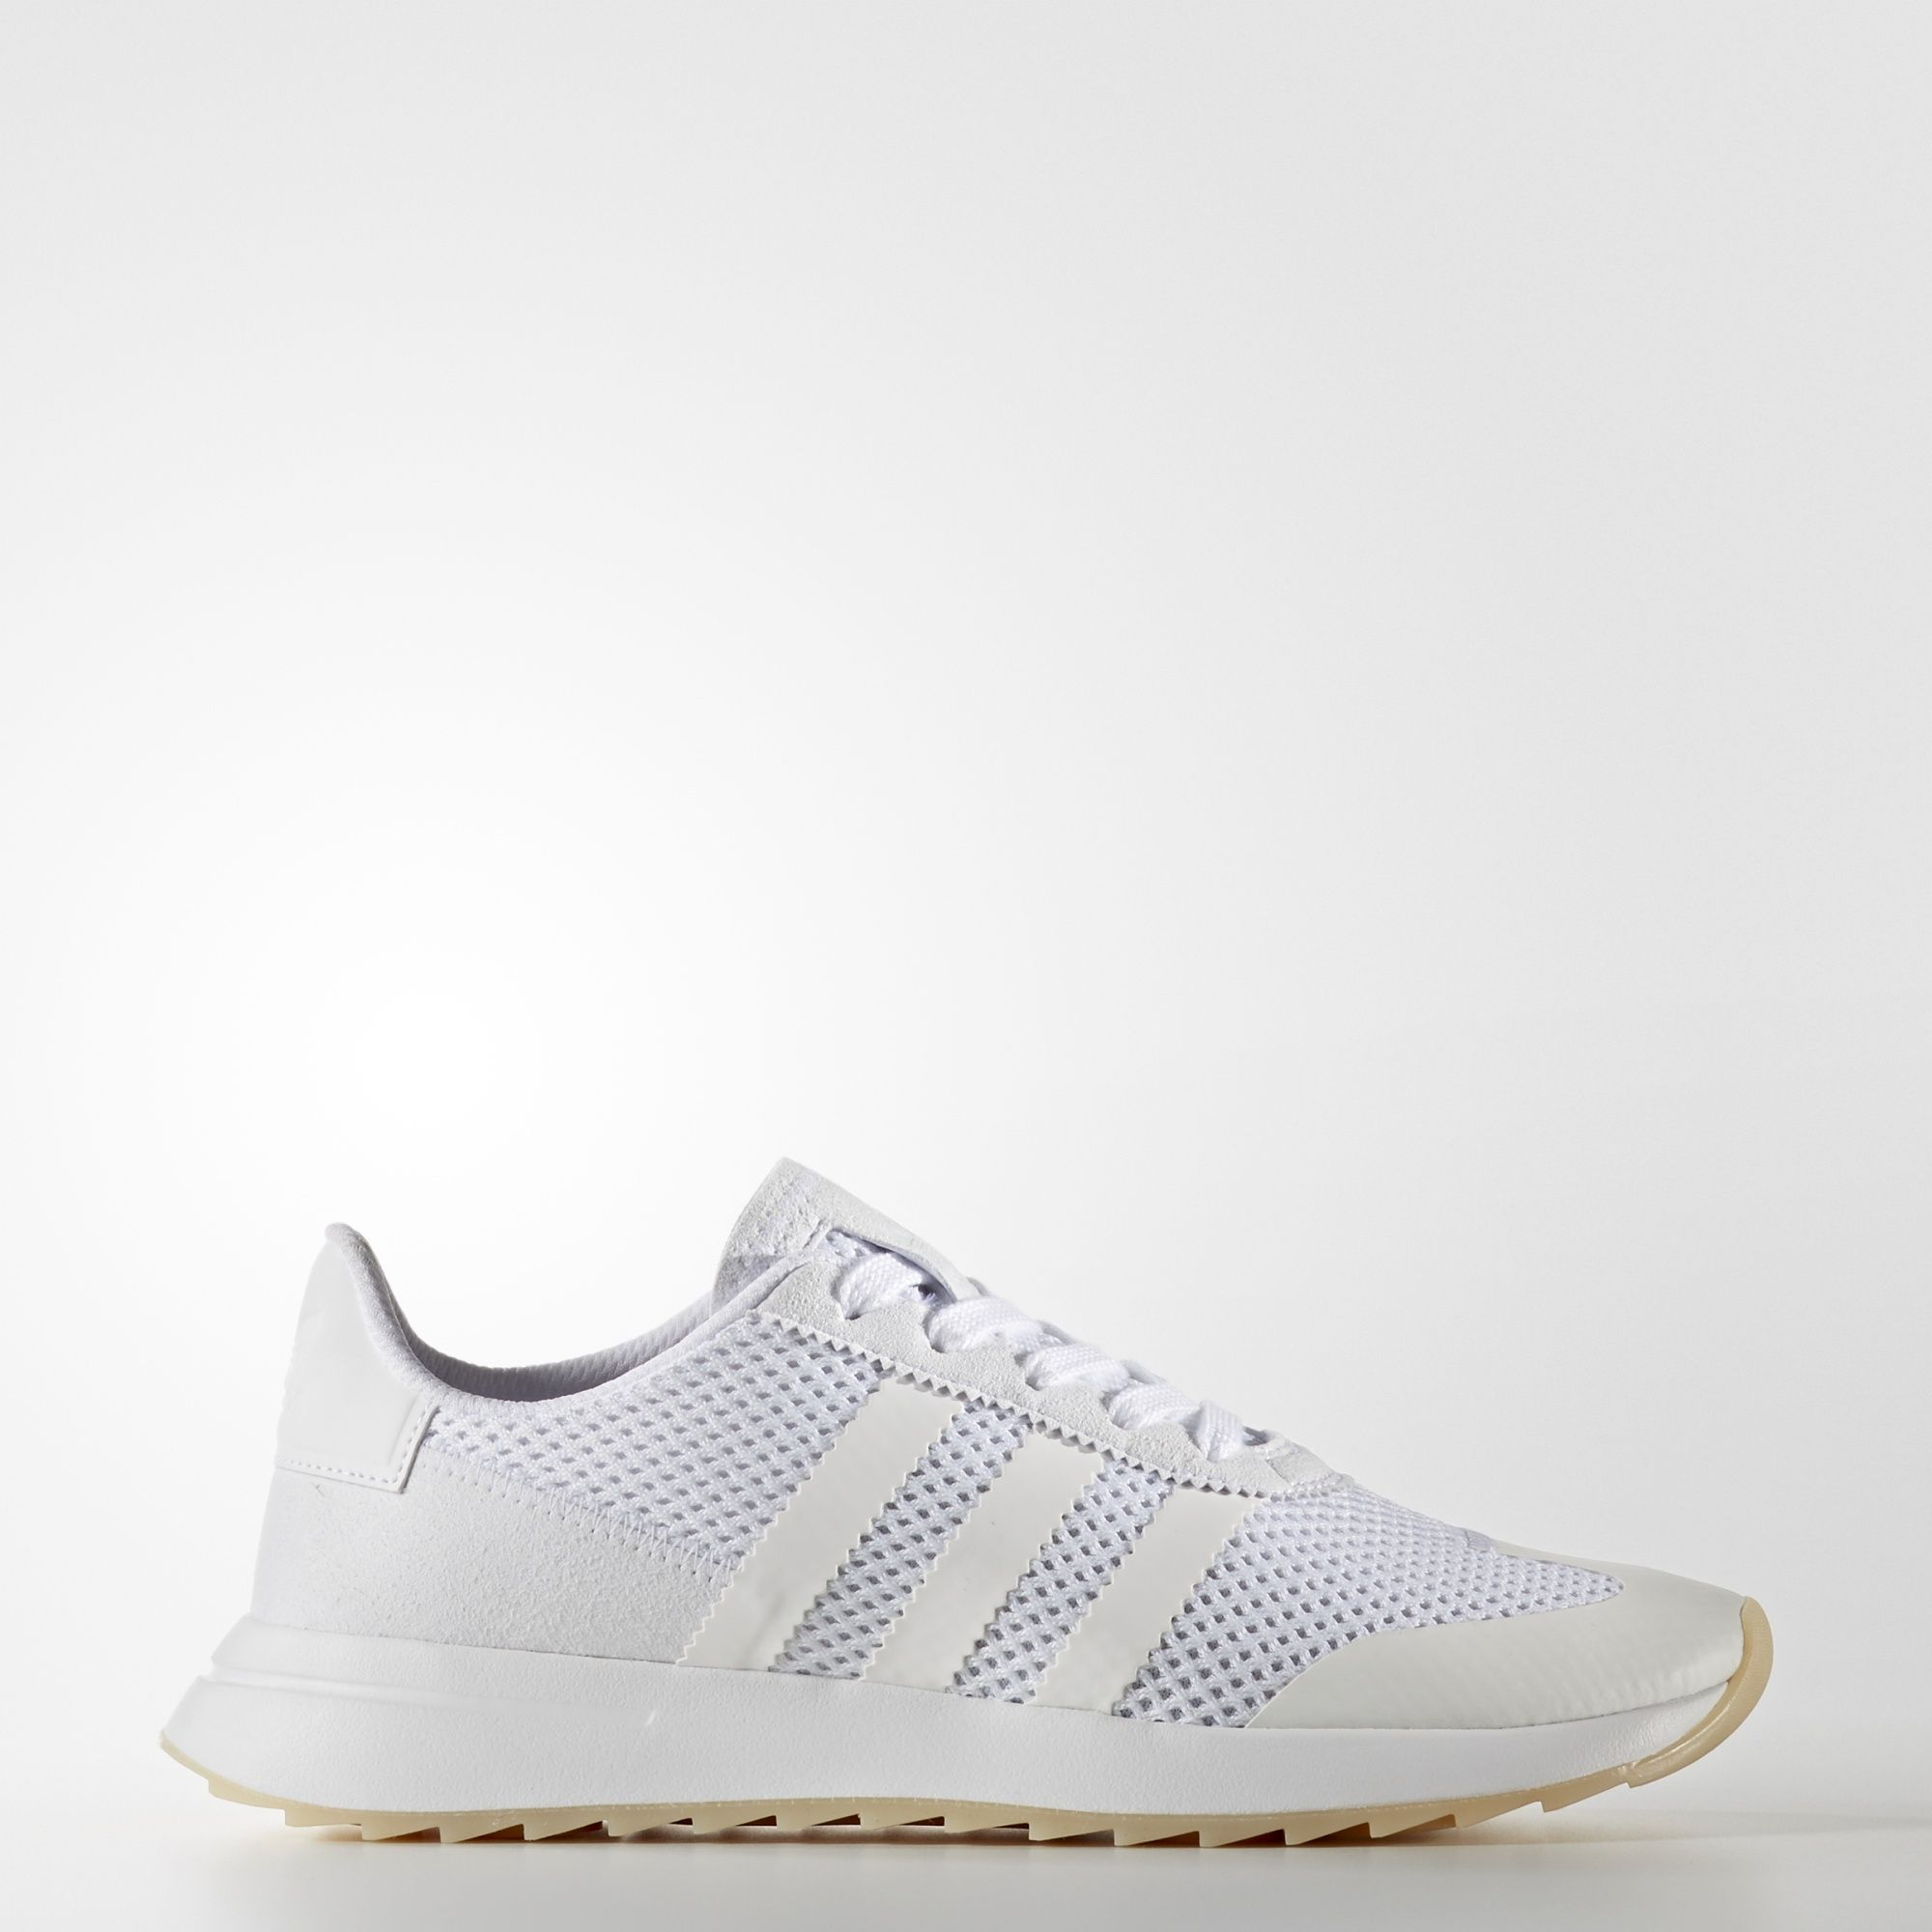 Fresh design ideas come from all corners of the adidas Originals archives.  These women's shoes